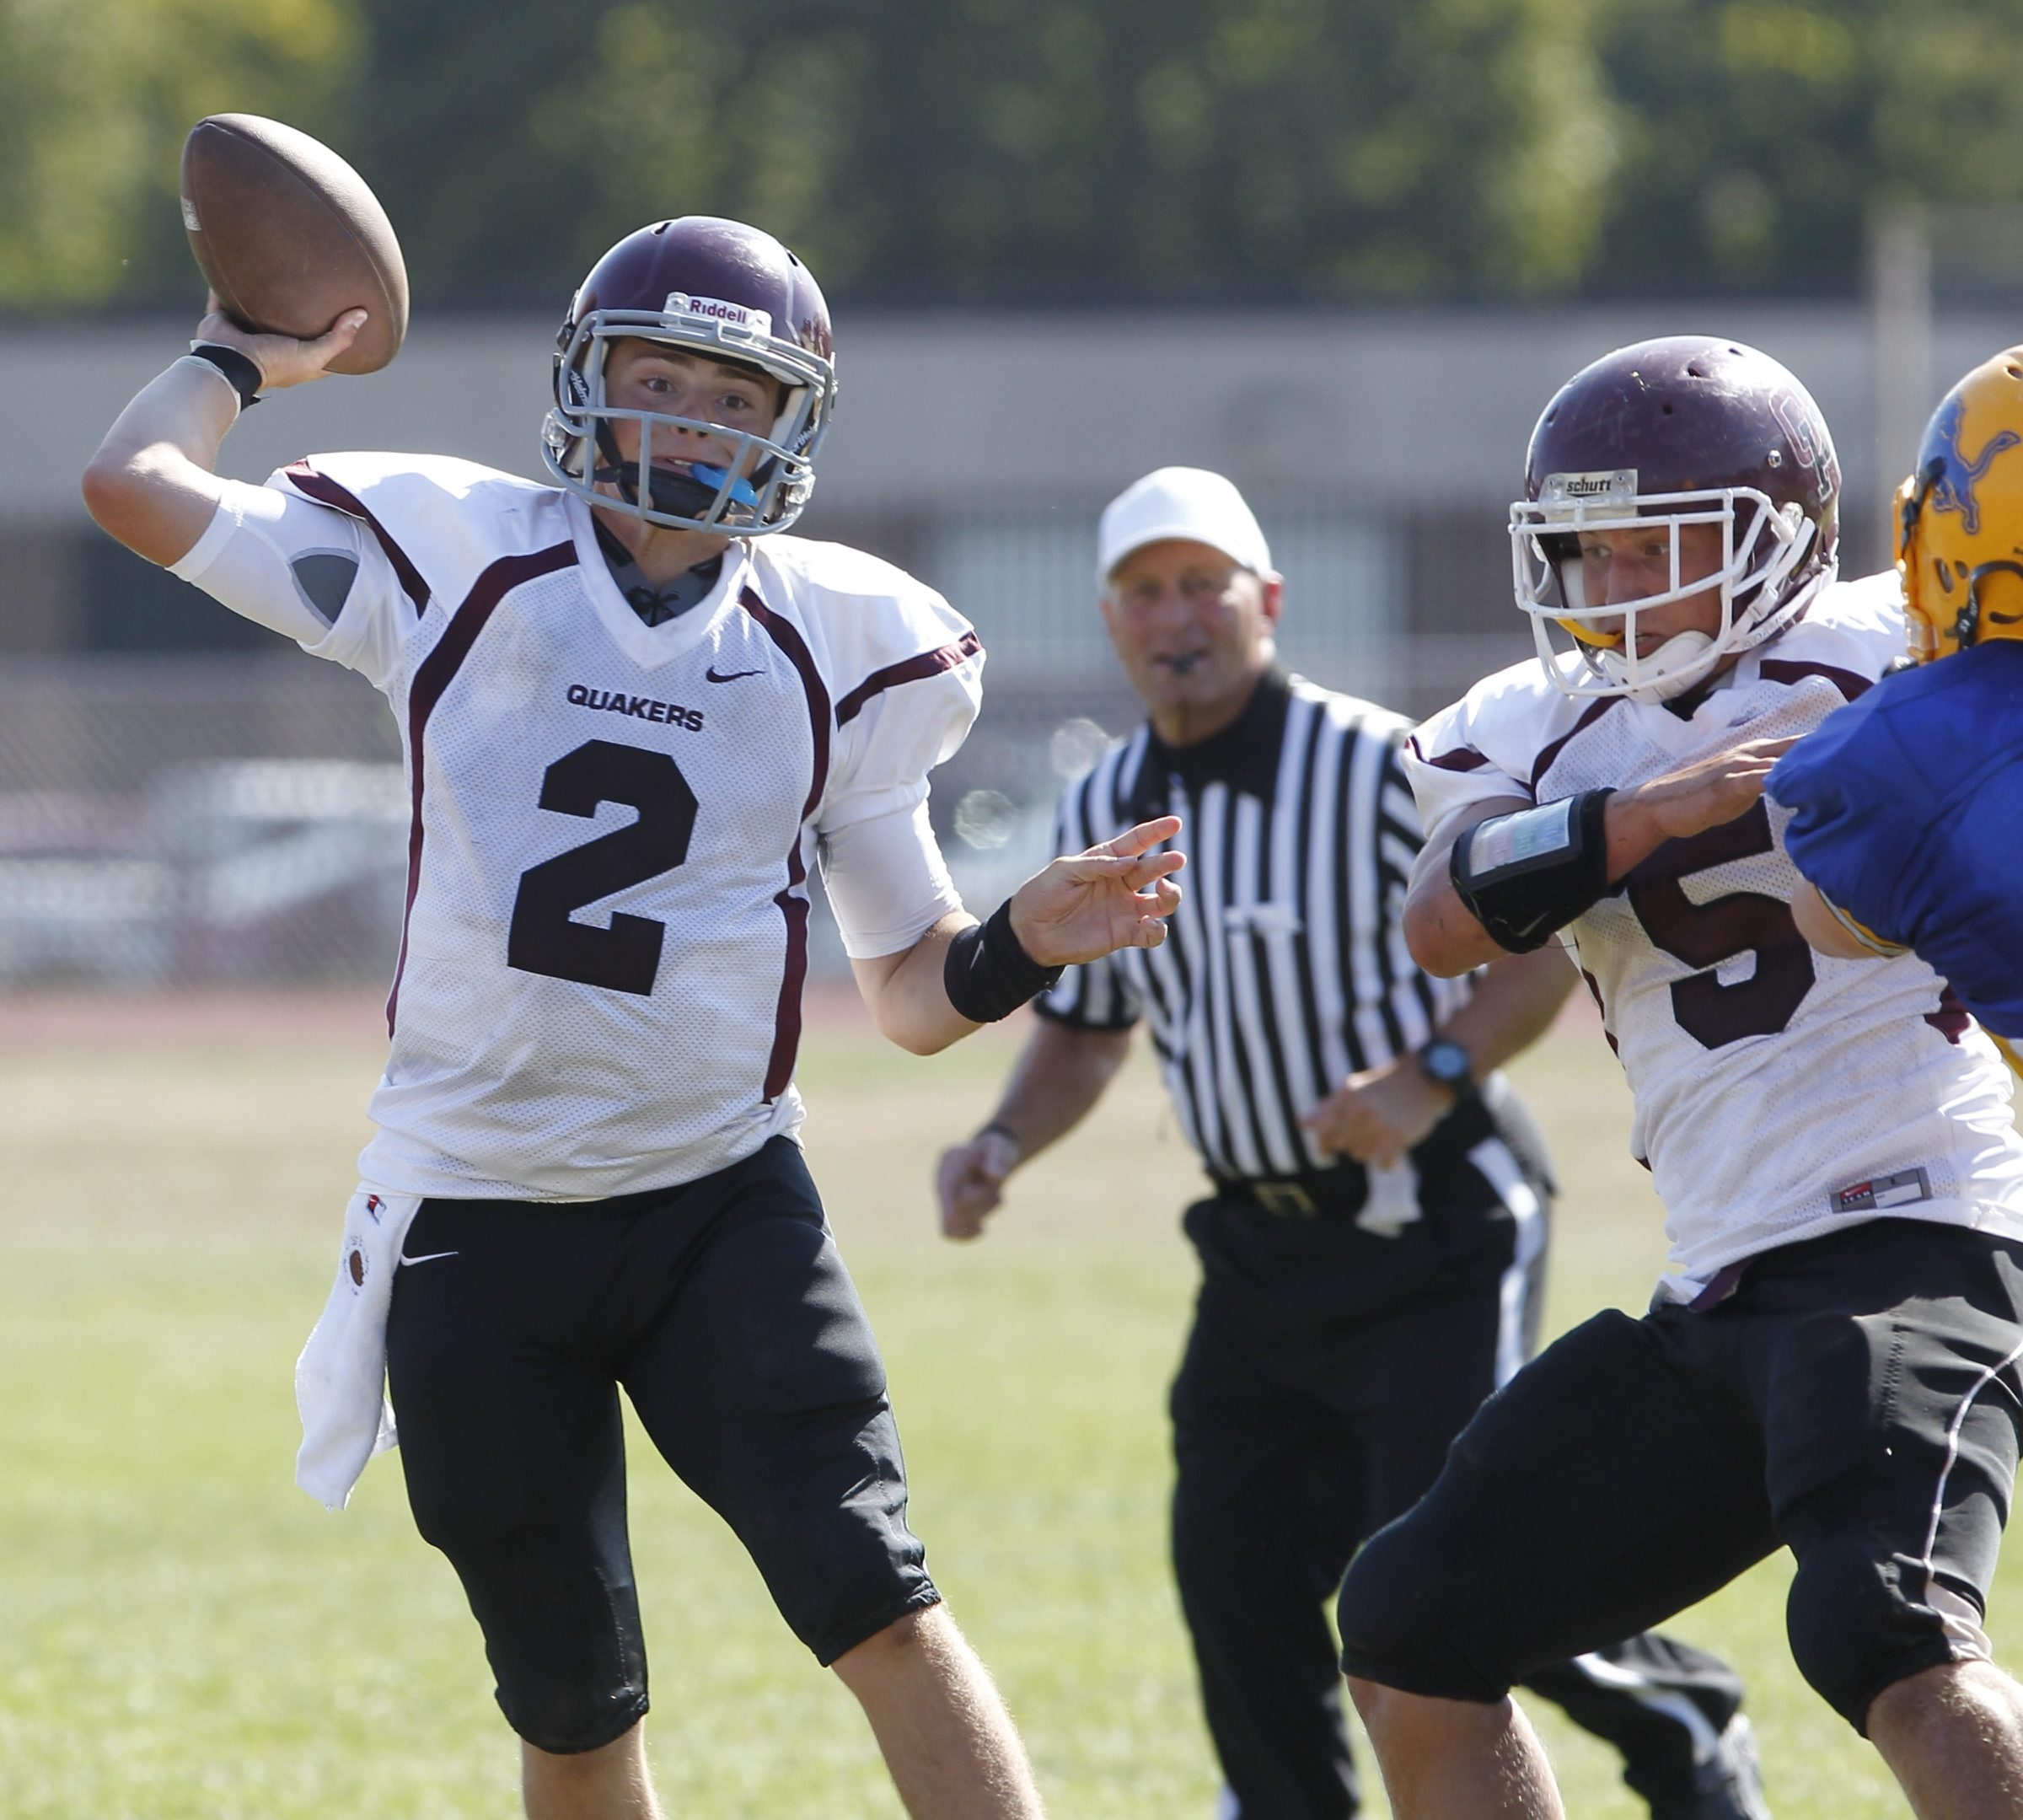 Ben Holmes, who moved to quarterback as a senior, helped lead Orchard Park to a New York State Public High School Class AA title in 2011.